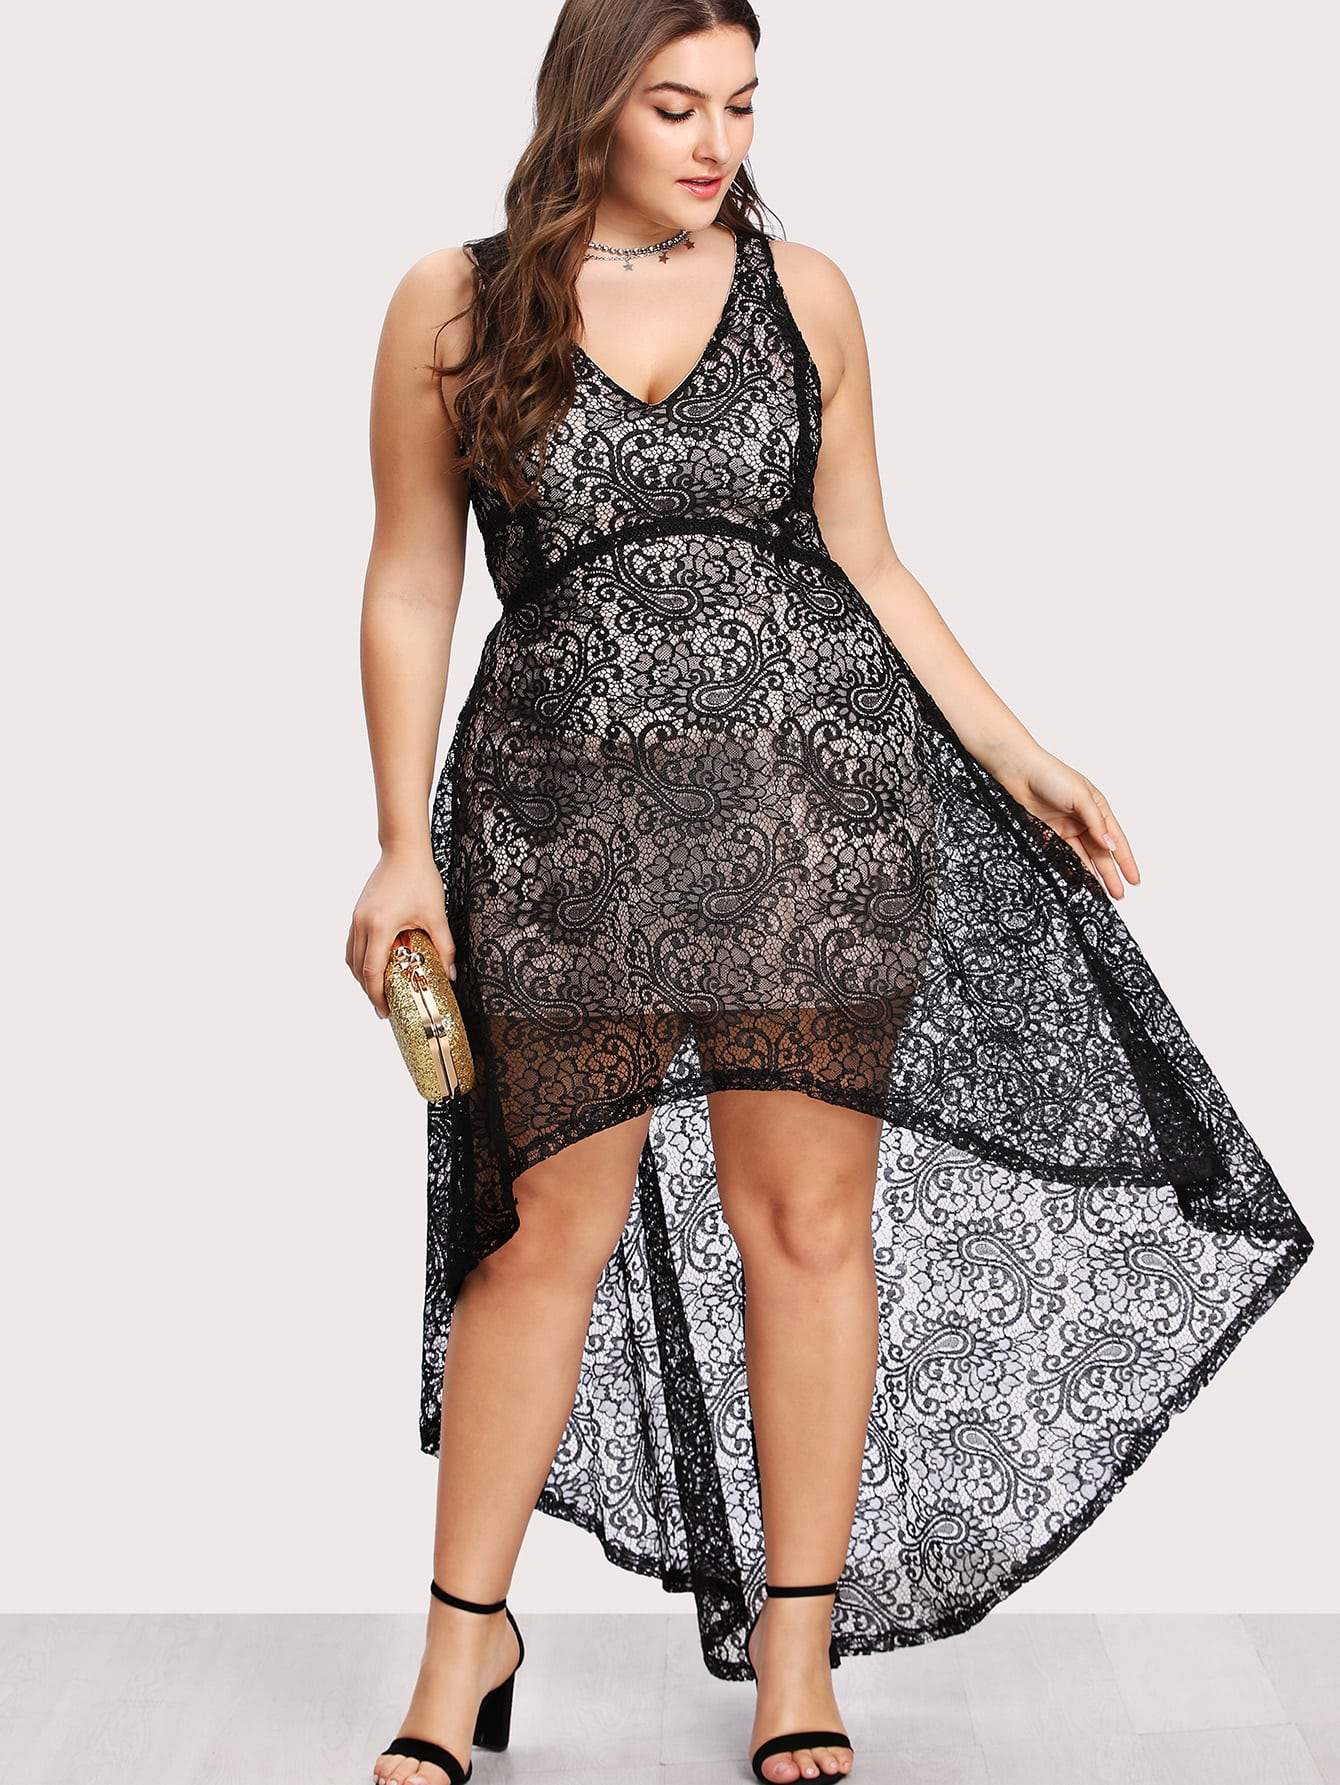 Floral Lace Overlay Dip Hem Dress floral lace overlay top